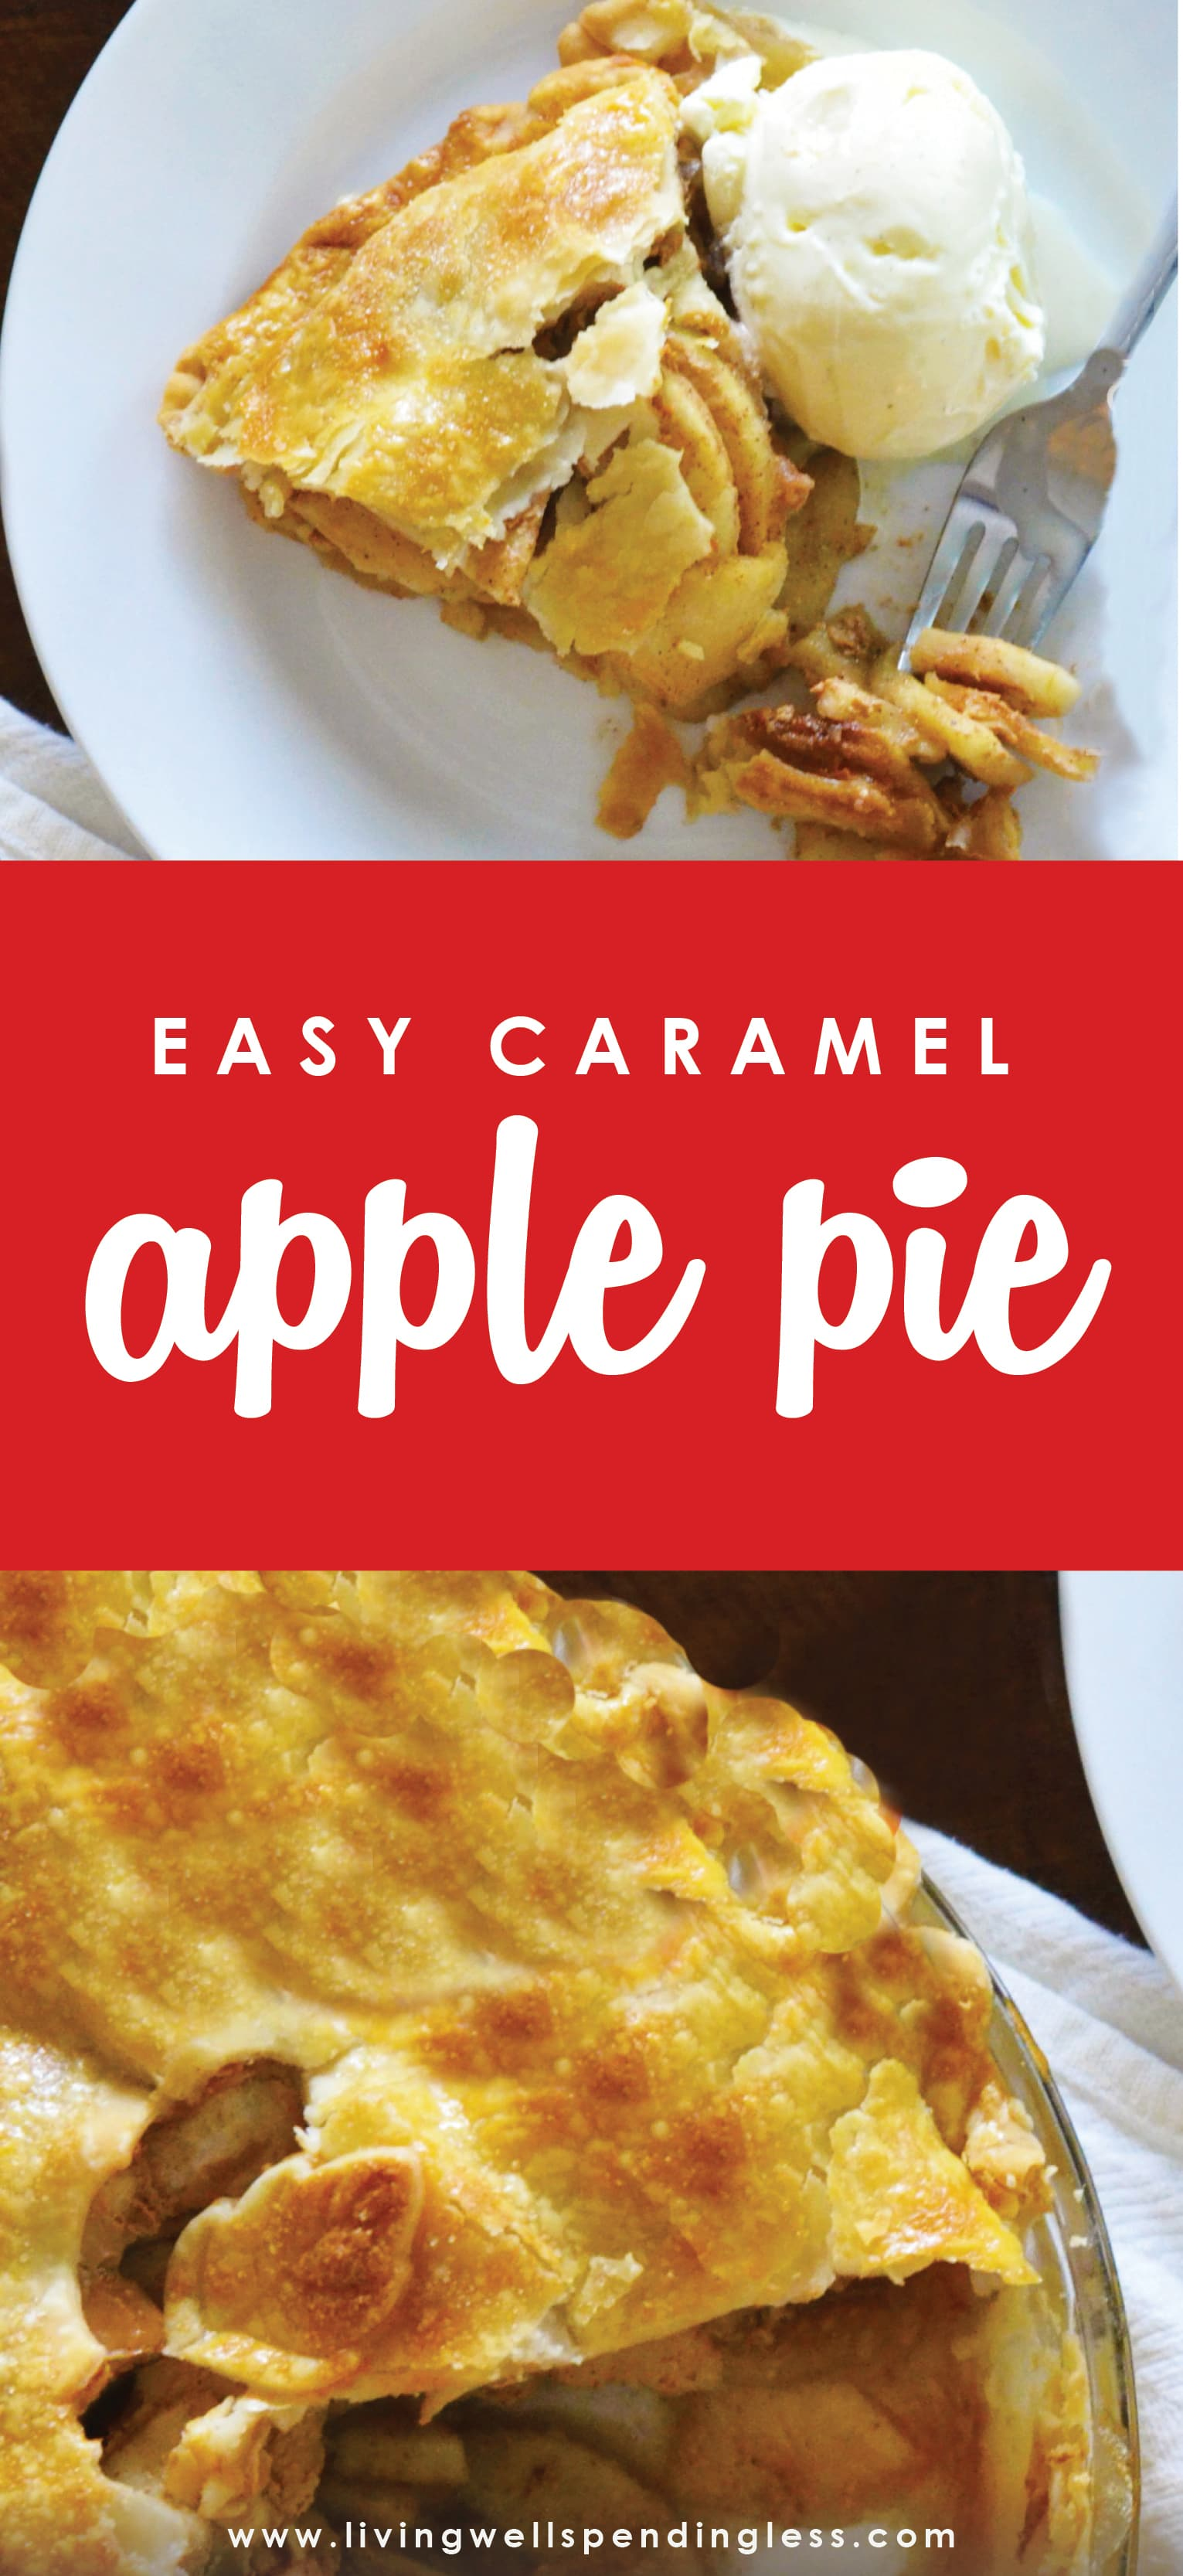 Love apple pie but not all the effort You won't believe how quick and easy it is to whip up this amazingly delicious, almost-from-scratch, caramel-infused version! Plus discover the secret weapon that every apple pie baker can't live without!  Easy Caramel Apple Pie | The BEST Easy Apple Pie Recipe | Homemade Caramel Apple Pie | Apple Pie | Pie Recipes | Thanksgiving Pie Recipes | Apple Pie from Scratch